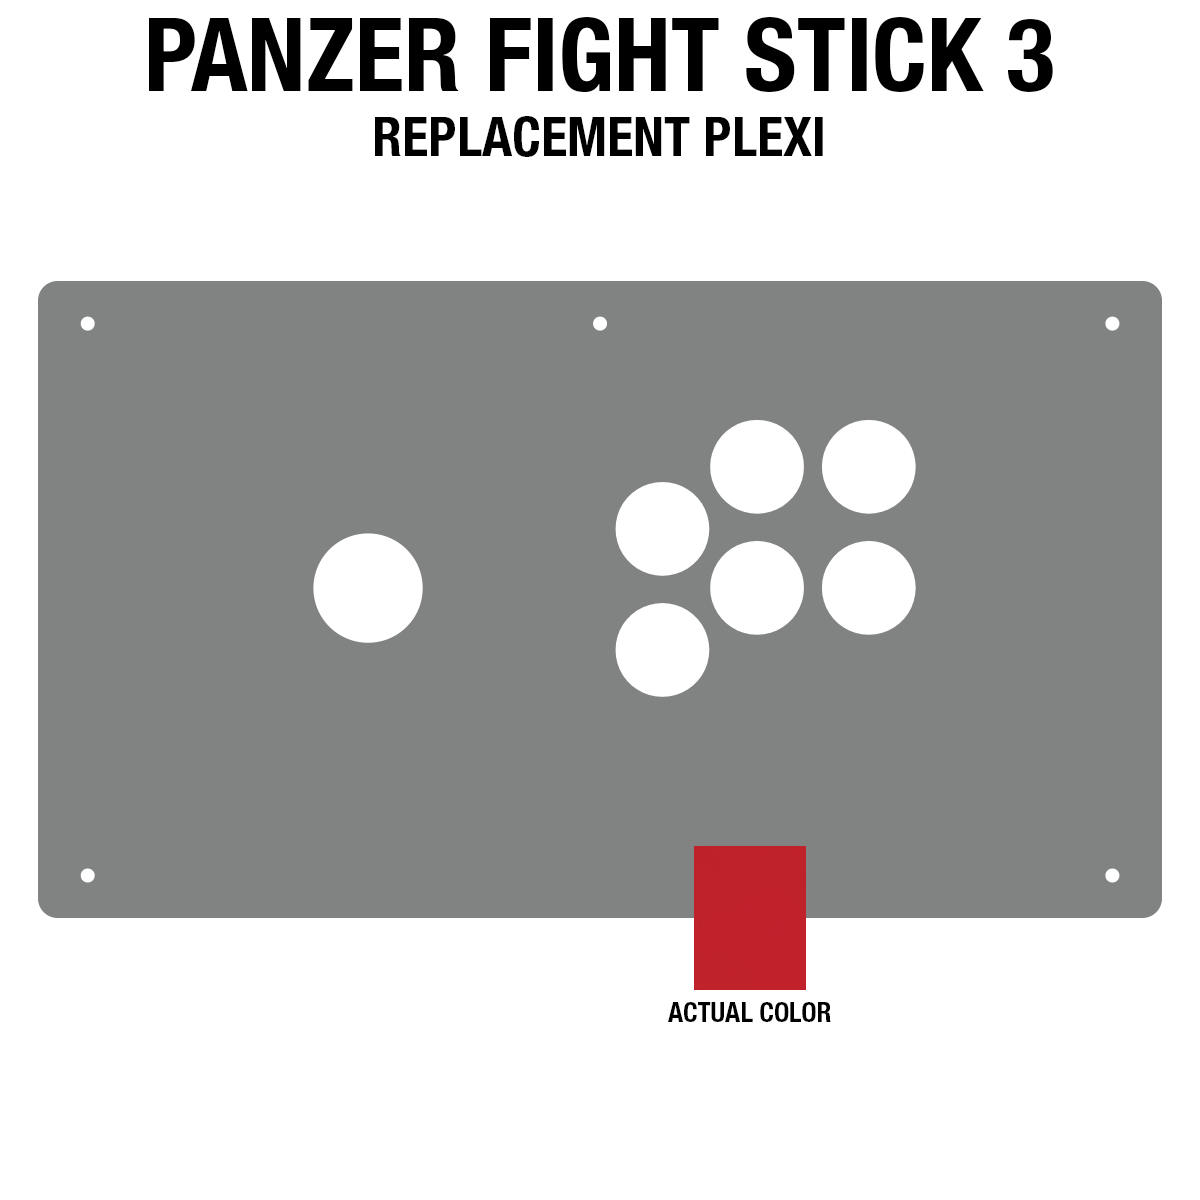 Panzer Fight Stick 3 [KOREAN EDITION] Plexi - Red Frosted (6 Buttons)